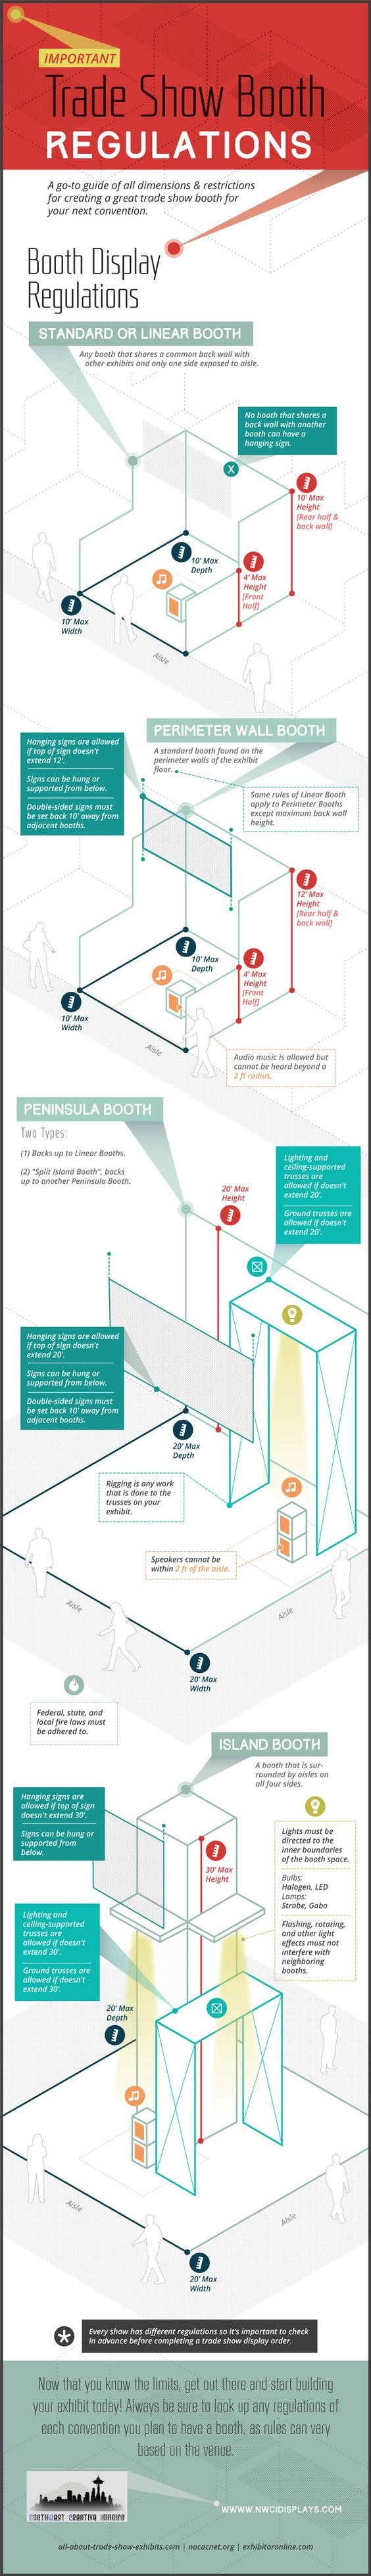 Exhibition Stand Etiquette : Trade show booth regulations infographic